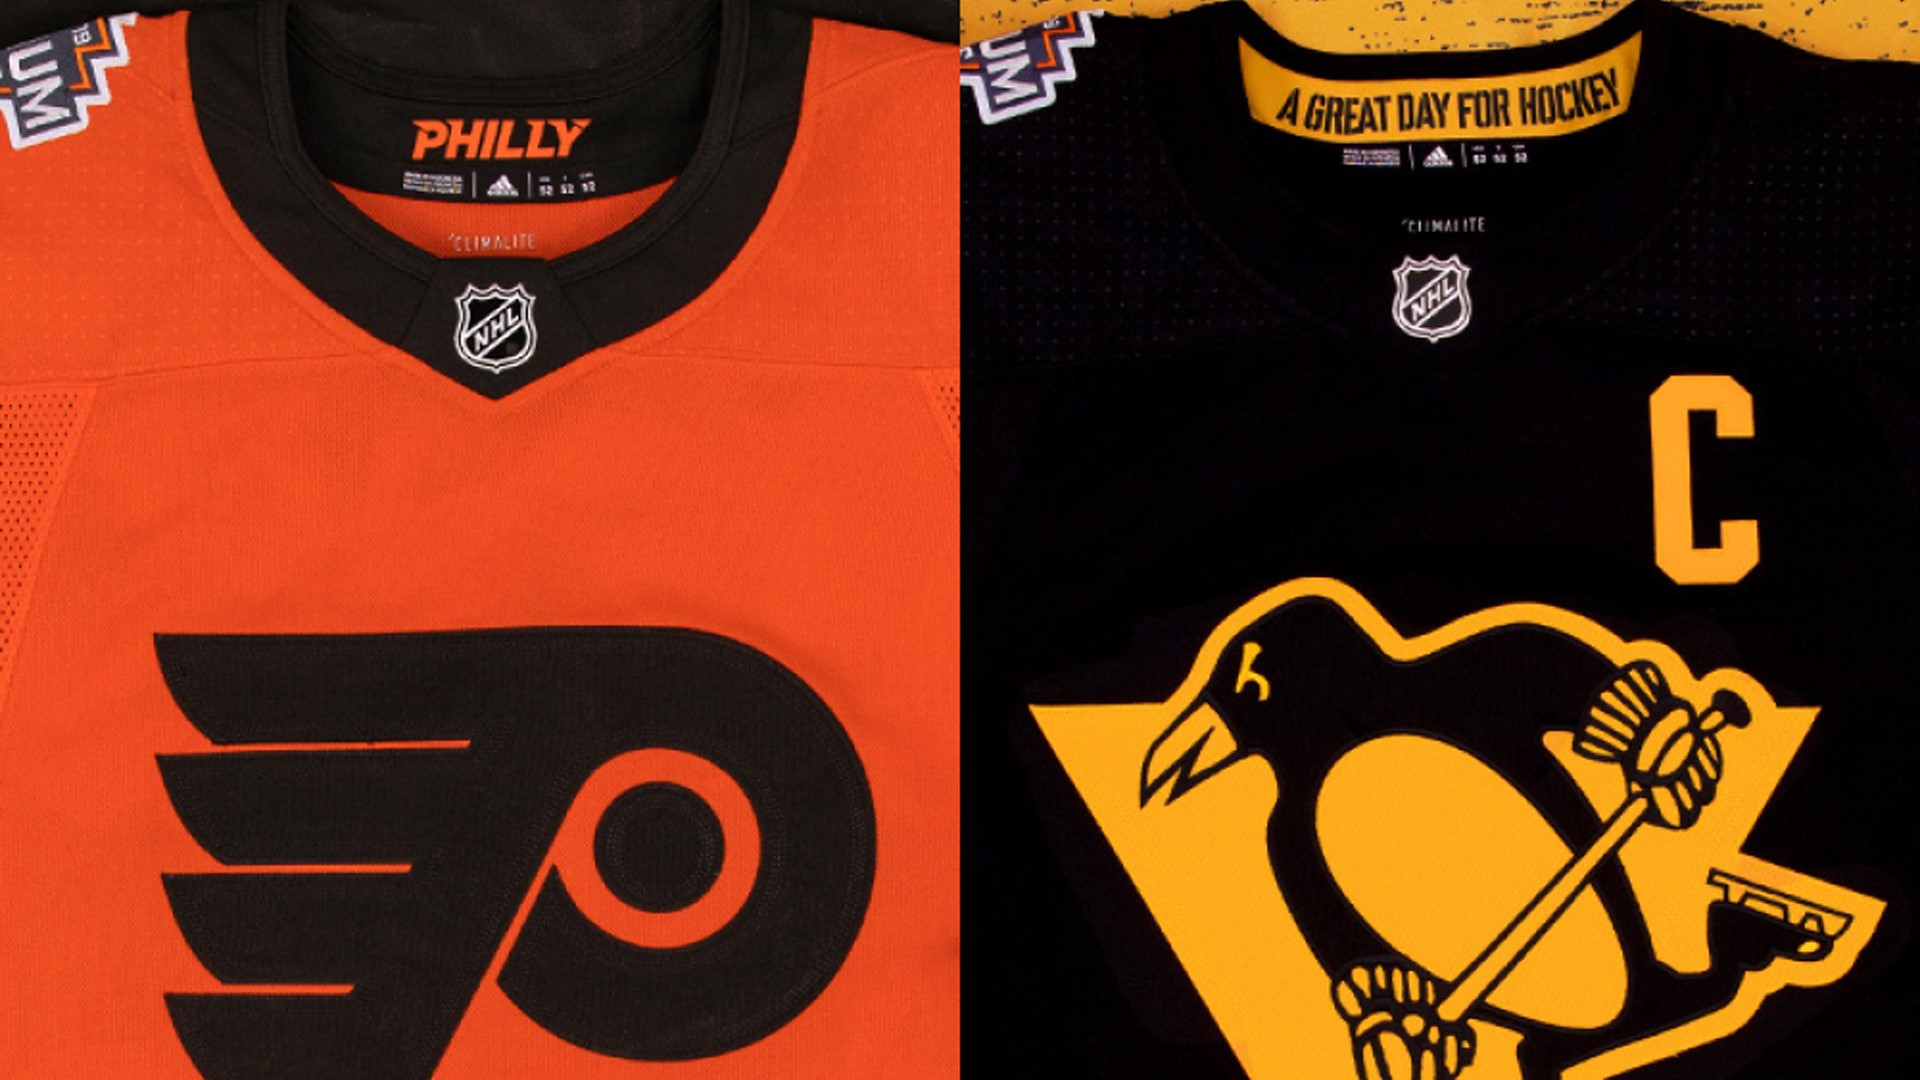 info for e0c3c ea1e1 Philadelphia Flyers, Pittsburgh Penguins, NHL & adidas ...